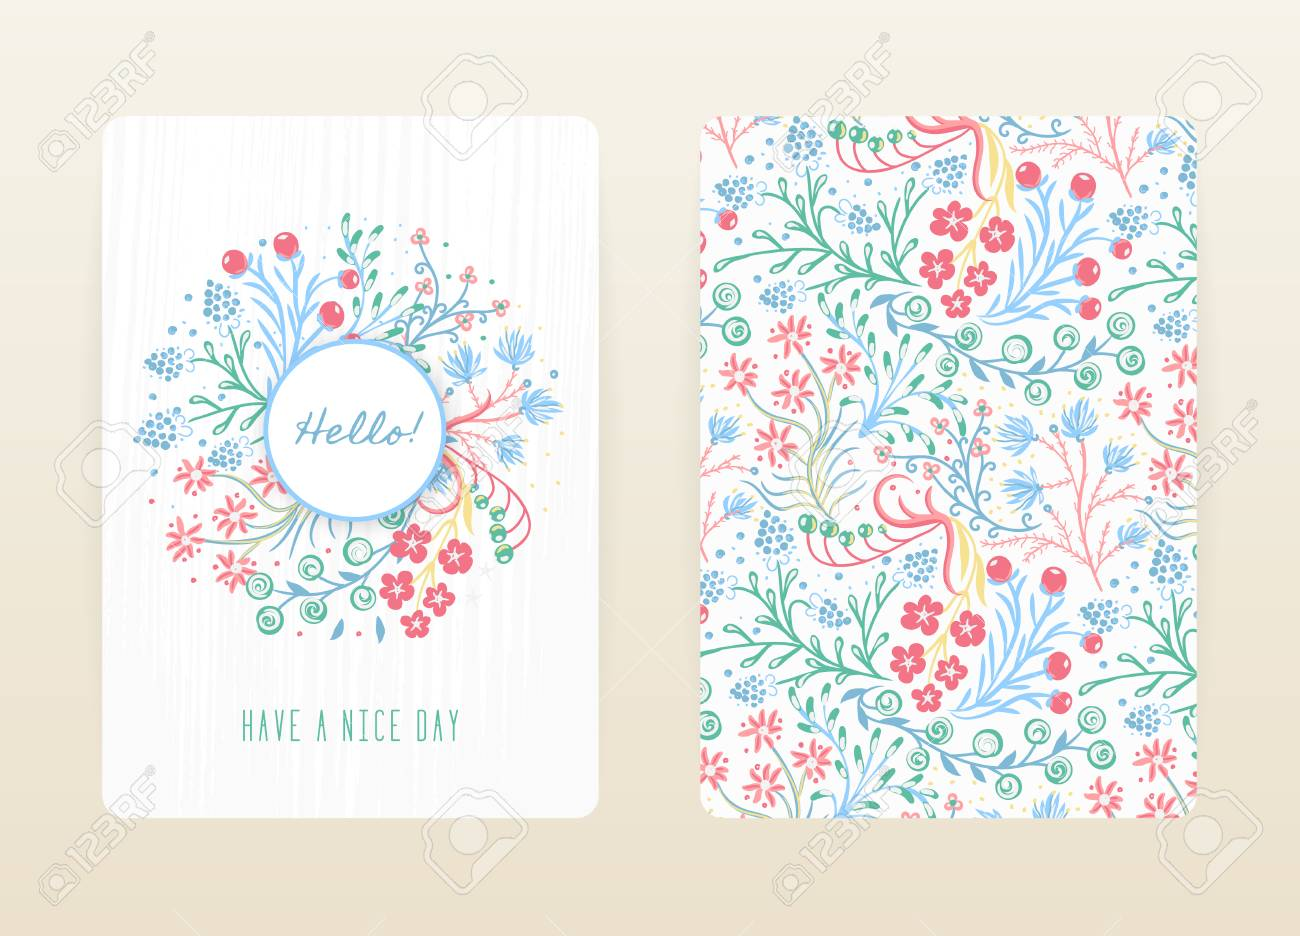 Cover design with floral pattern hand drawn creative flowers cover design with floral pattern hand drawn creative flowers colorful artistic background with blossom stopboris Gallery